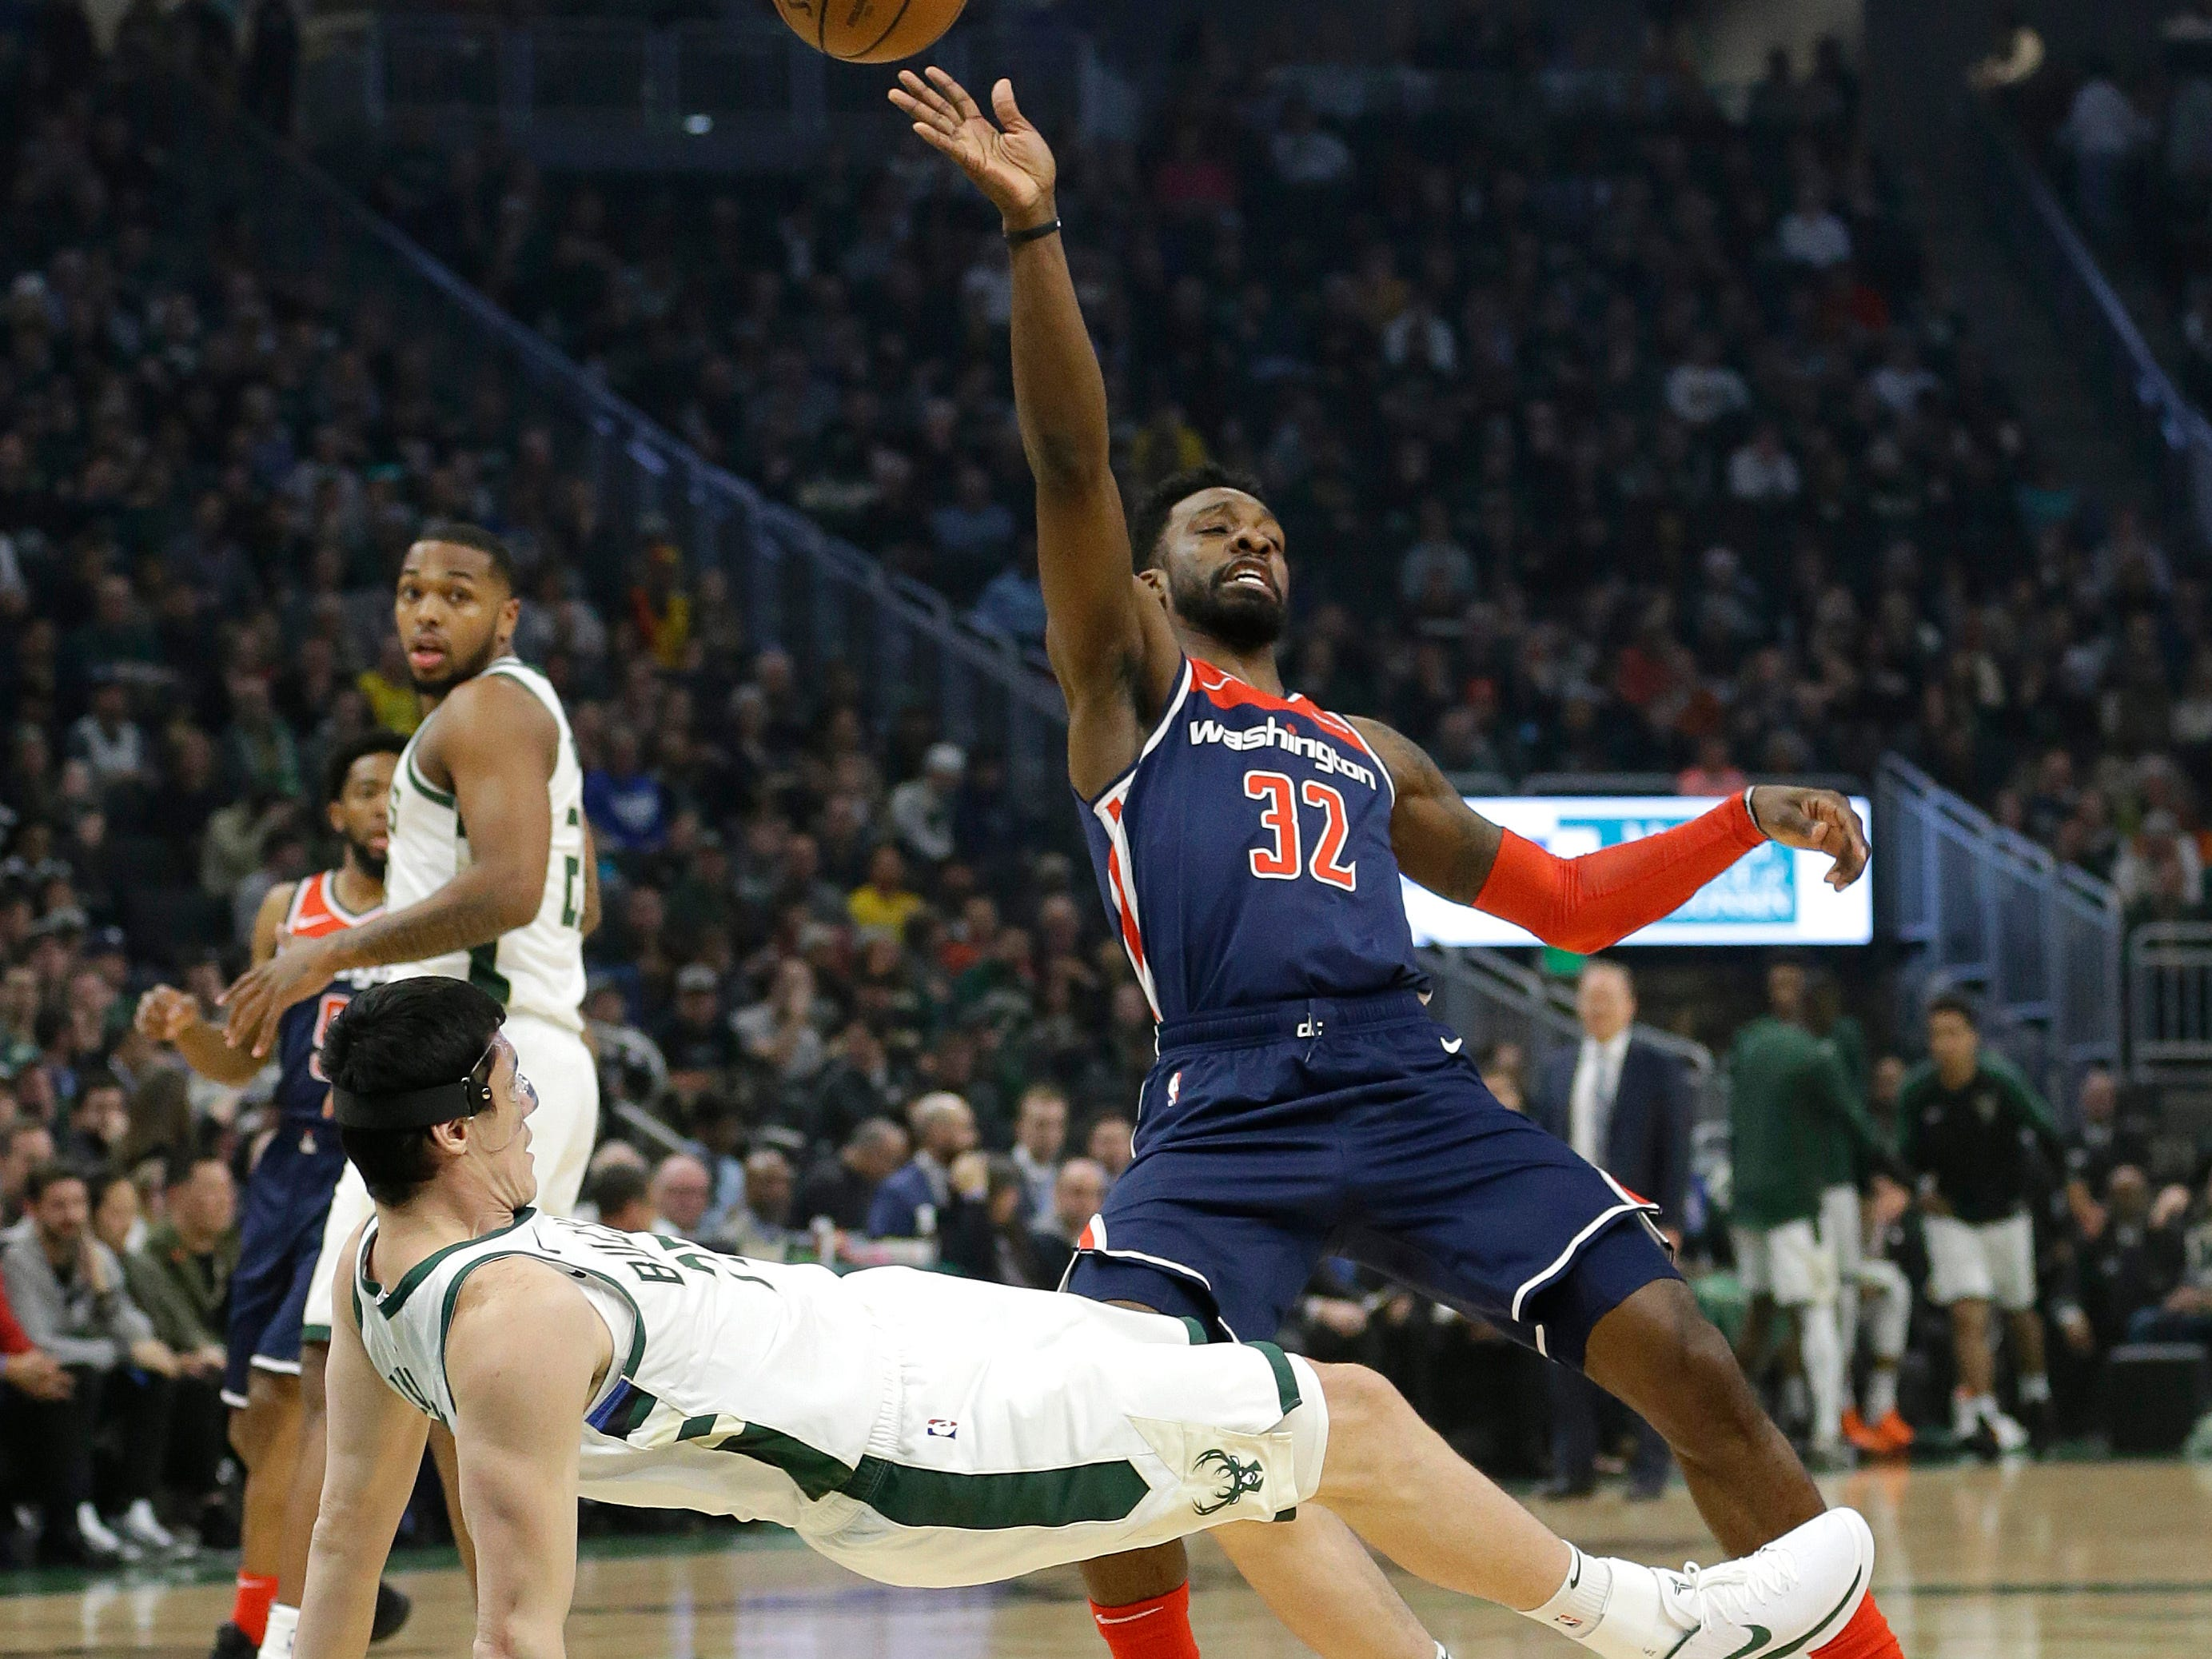 Bucks forward Ersan Ilyasova draws a charging foul on Wizards forward Jeff Green during the first half Wednesday night.